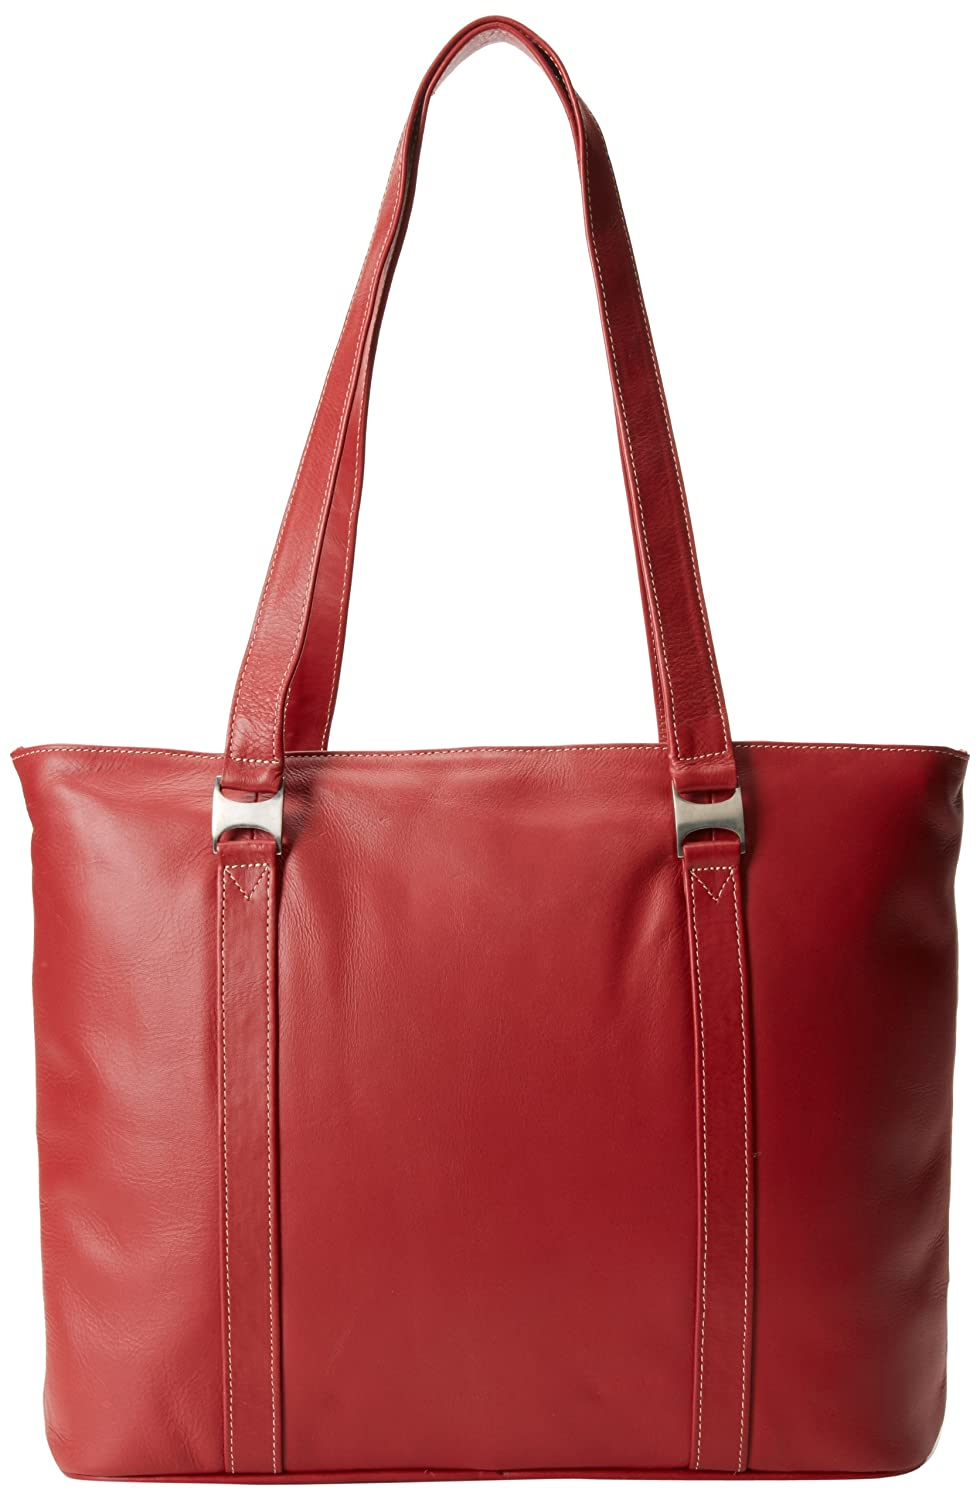 d21545499 Amazon.com: Piel Leather Computer Tote Bag, Red, One Size: Piel Leather